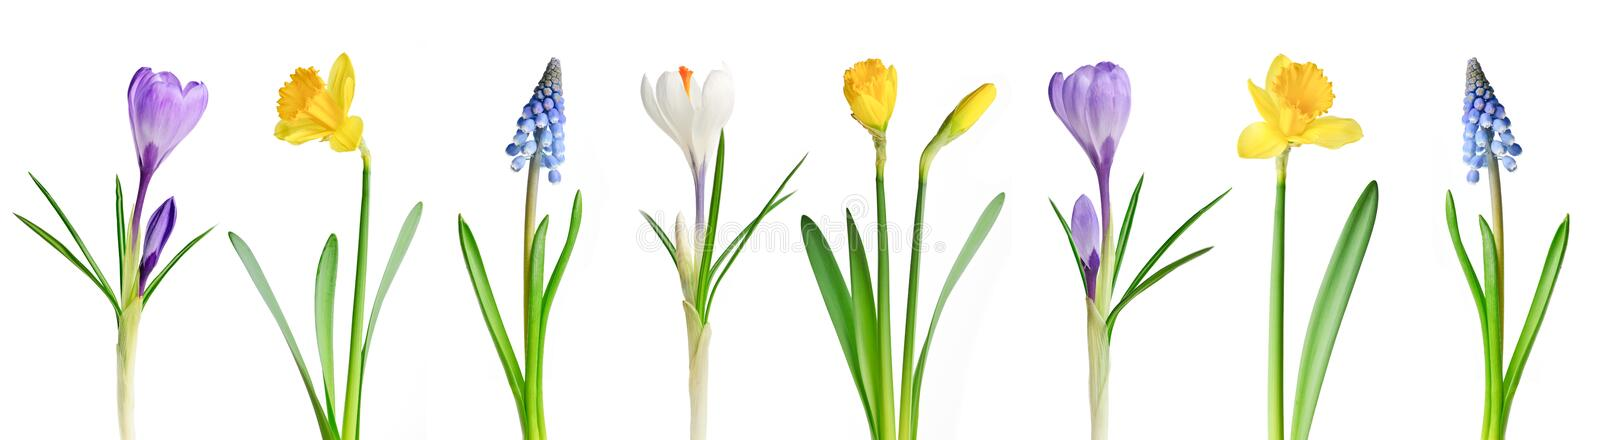 Spring flowers in a row royalty free stock images